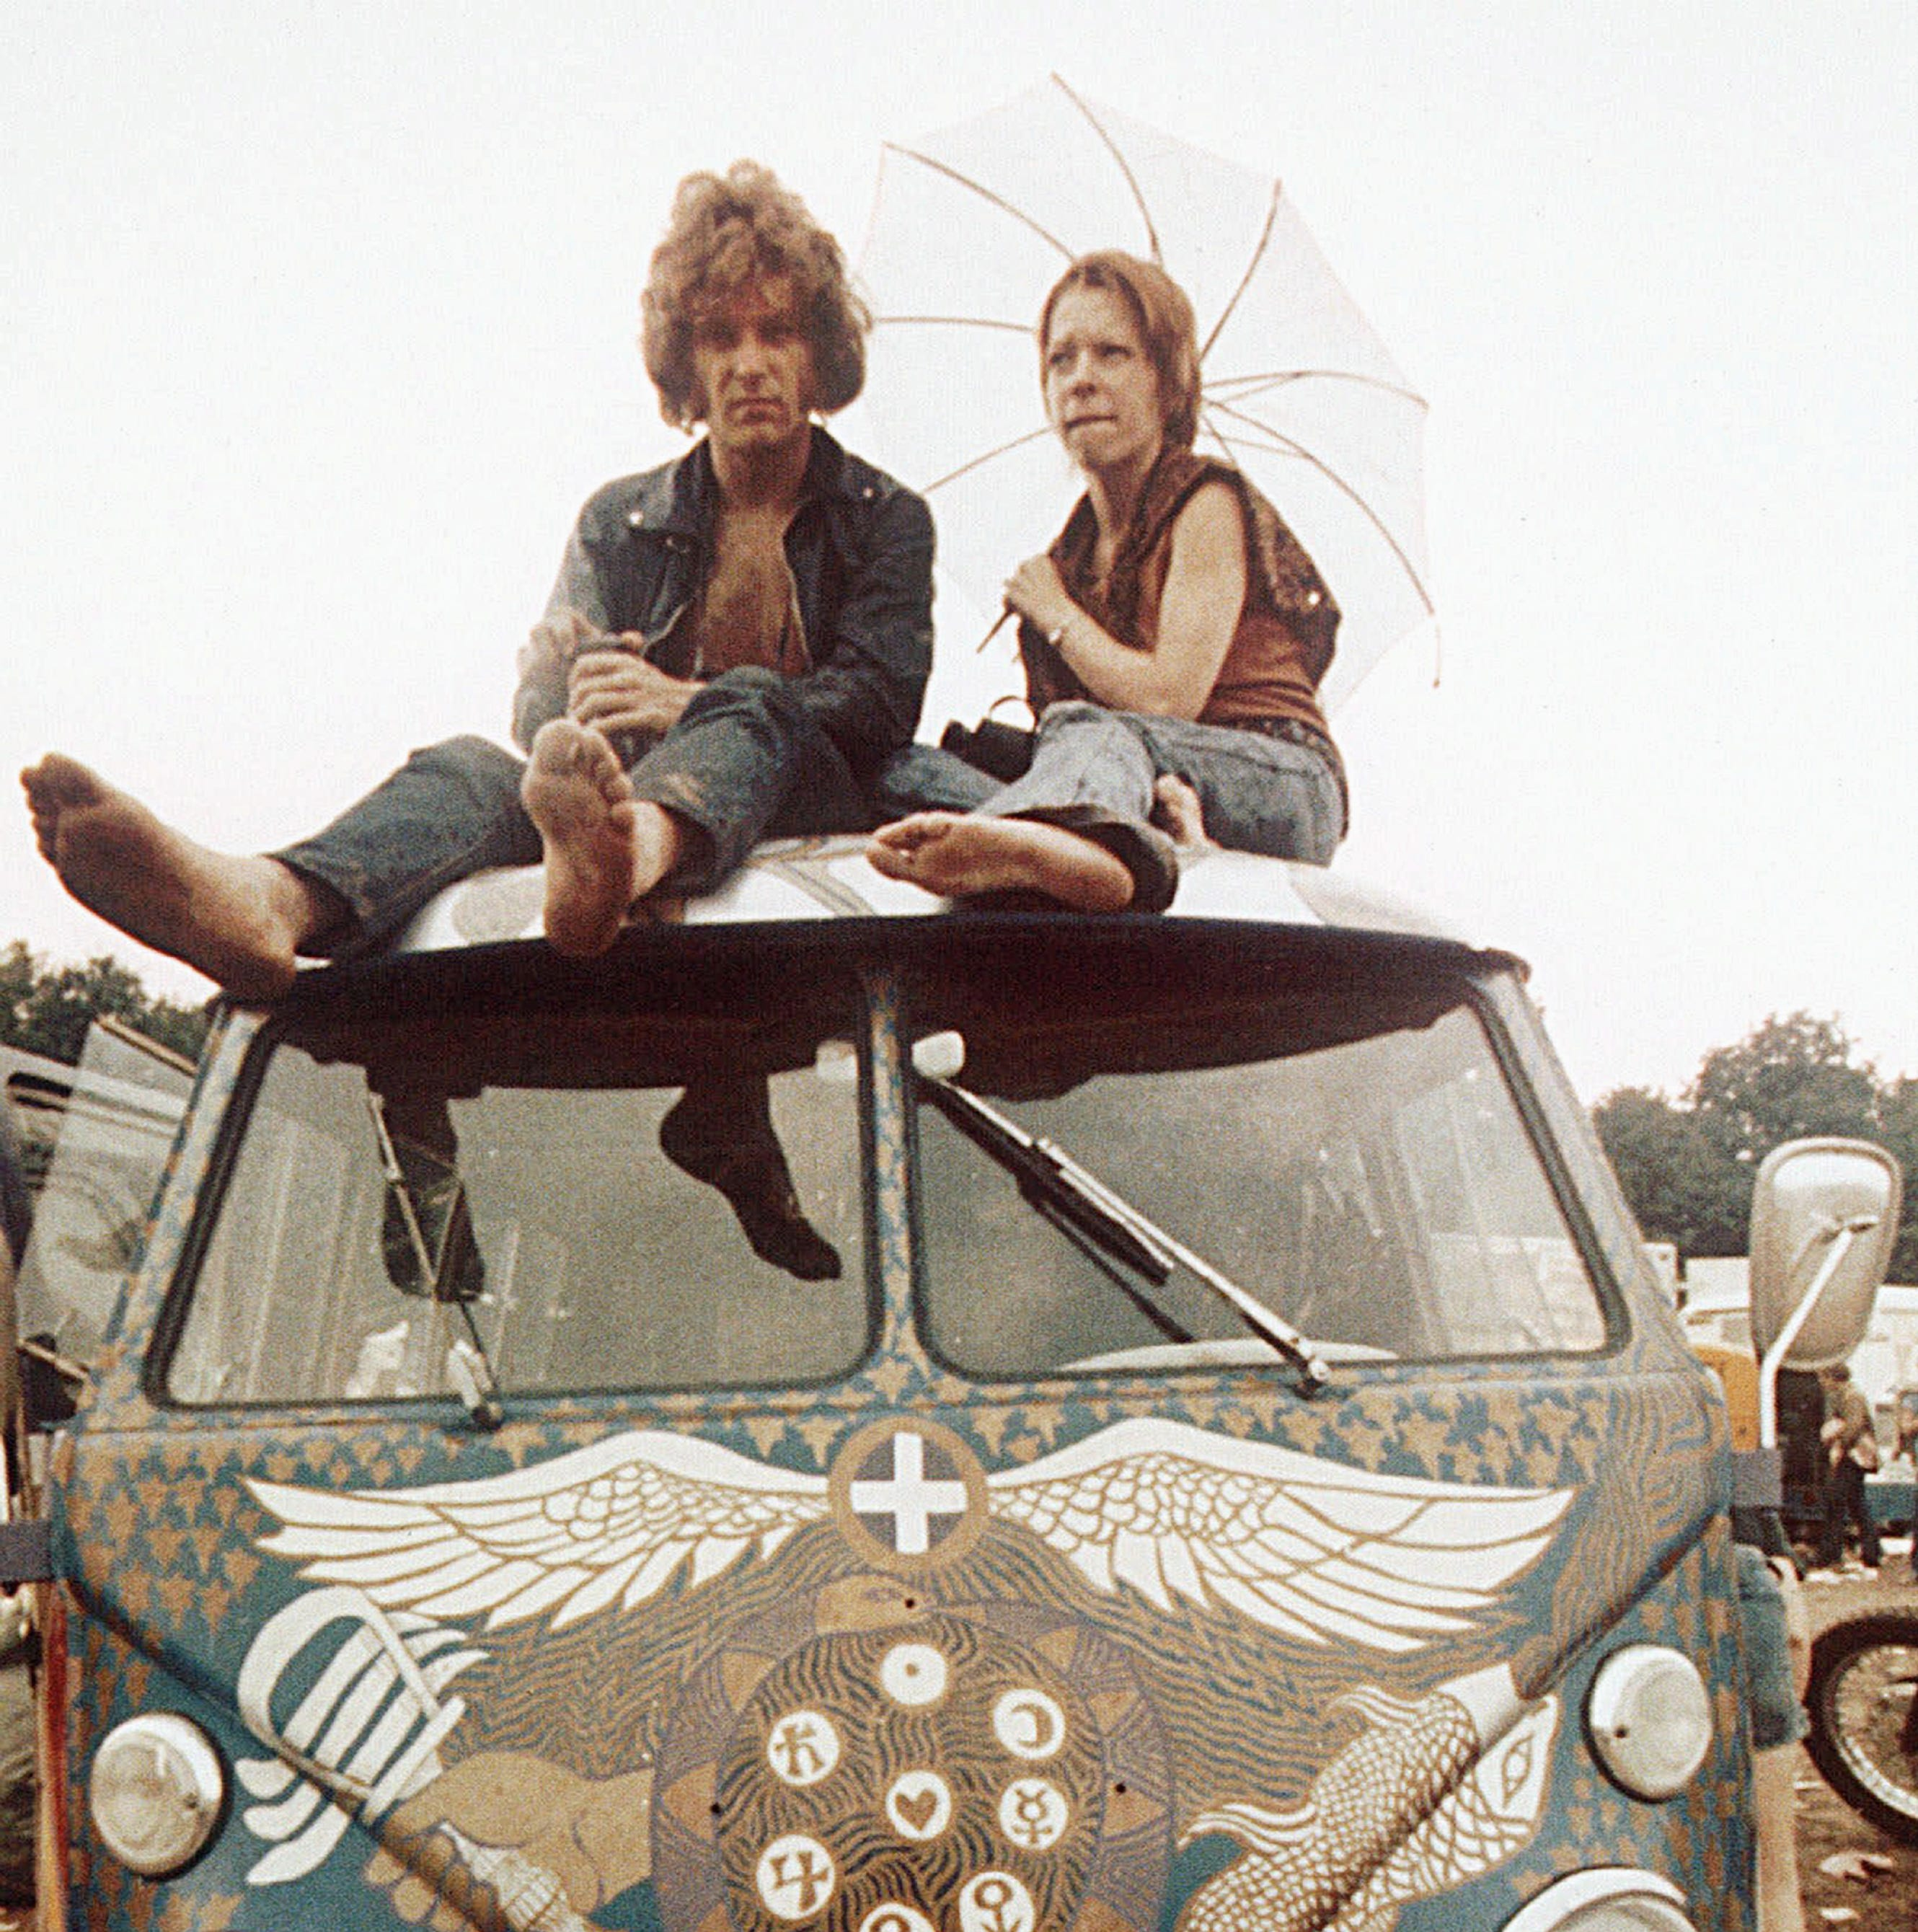 Were you at 'Woodstock' in 1969? We'd like to hear from you.